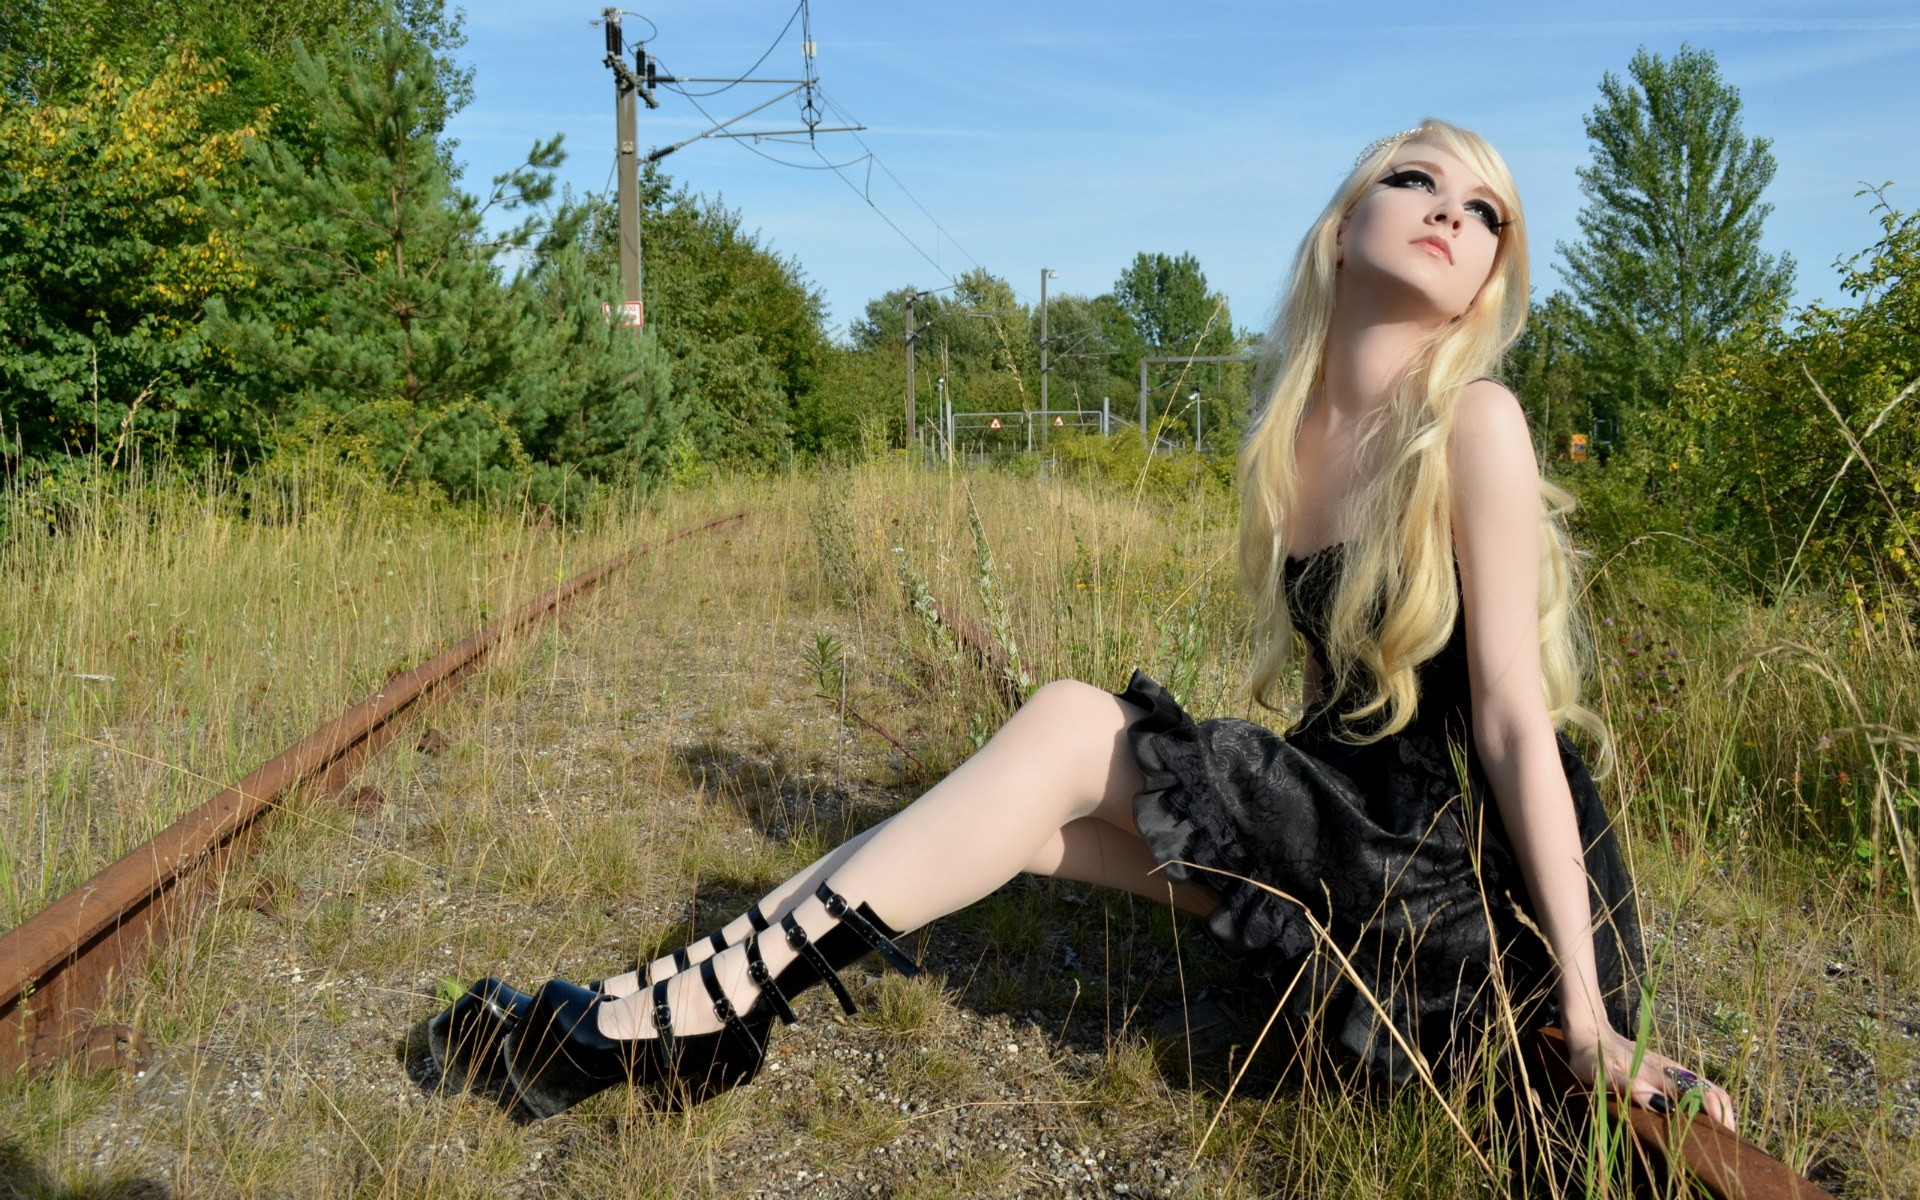 Cute Barbie Hd Wallpapers Valeria Lukyanova Mystery Wallpaper